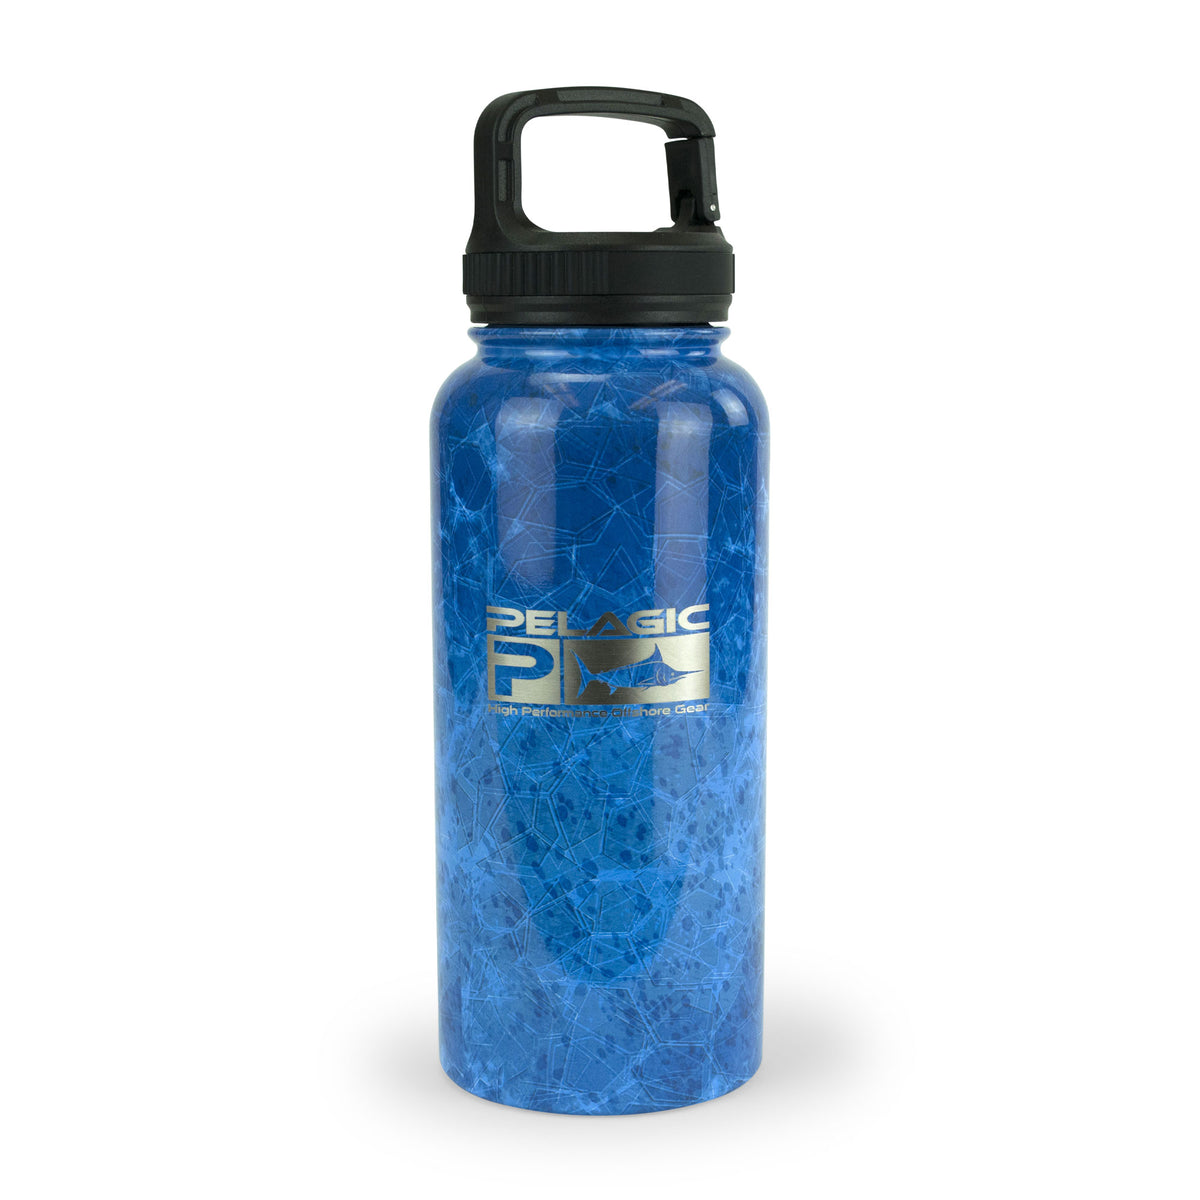 32oz Water Bottle - Dorado Hex Big Image - 1